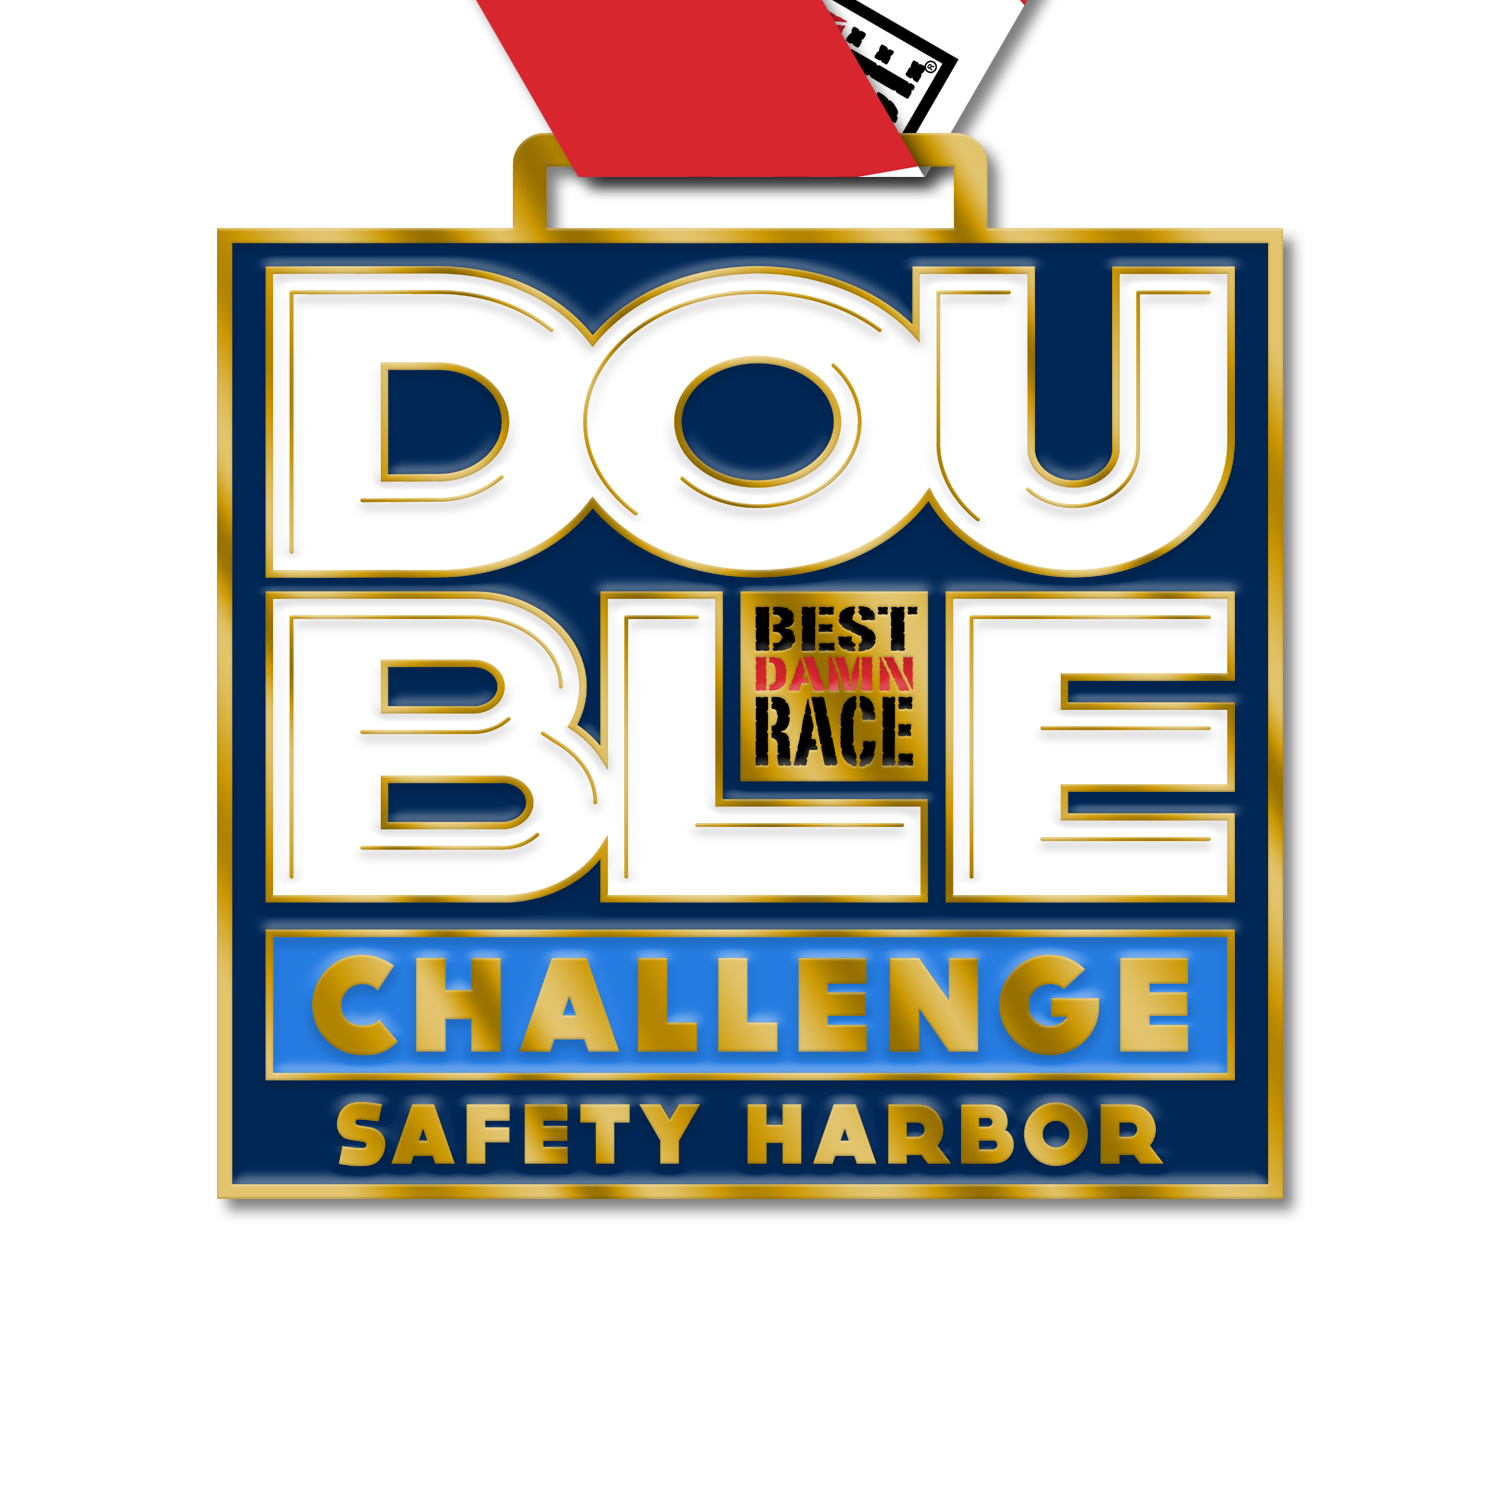 Safety Harbor, FL | Double Challenge